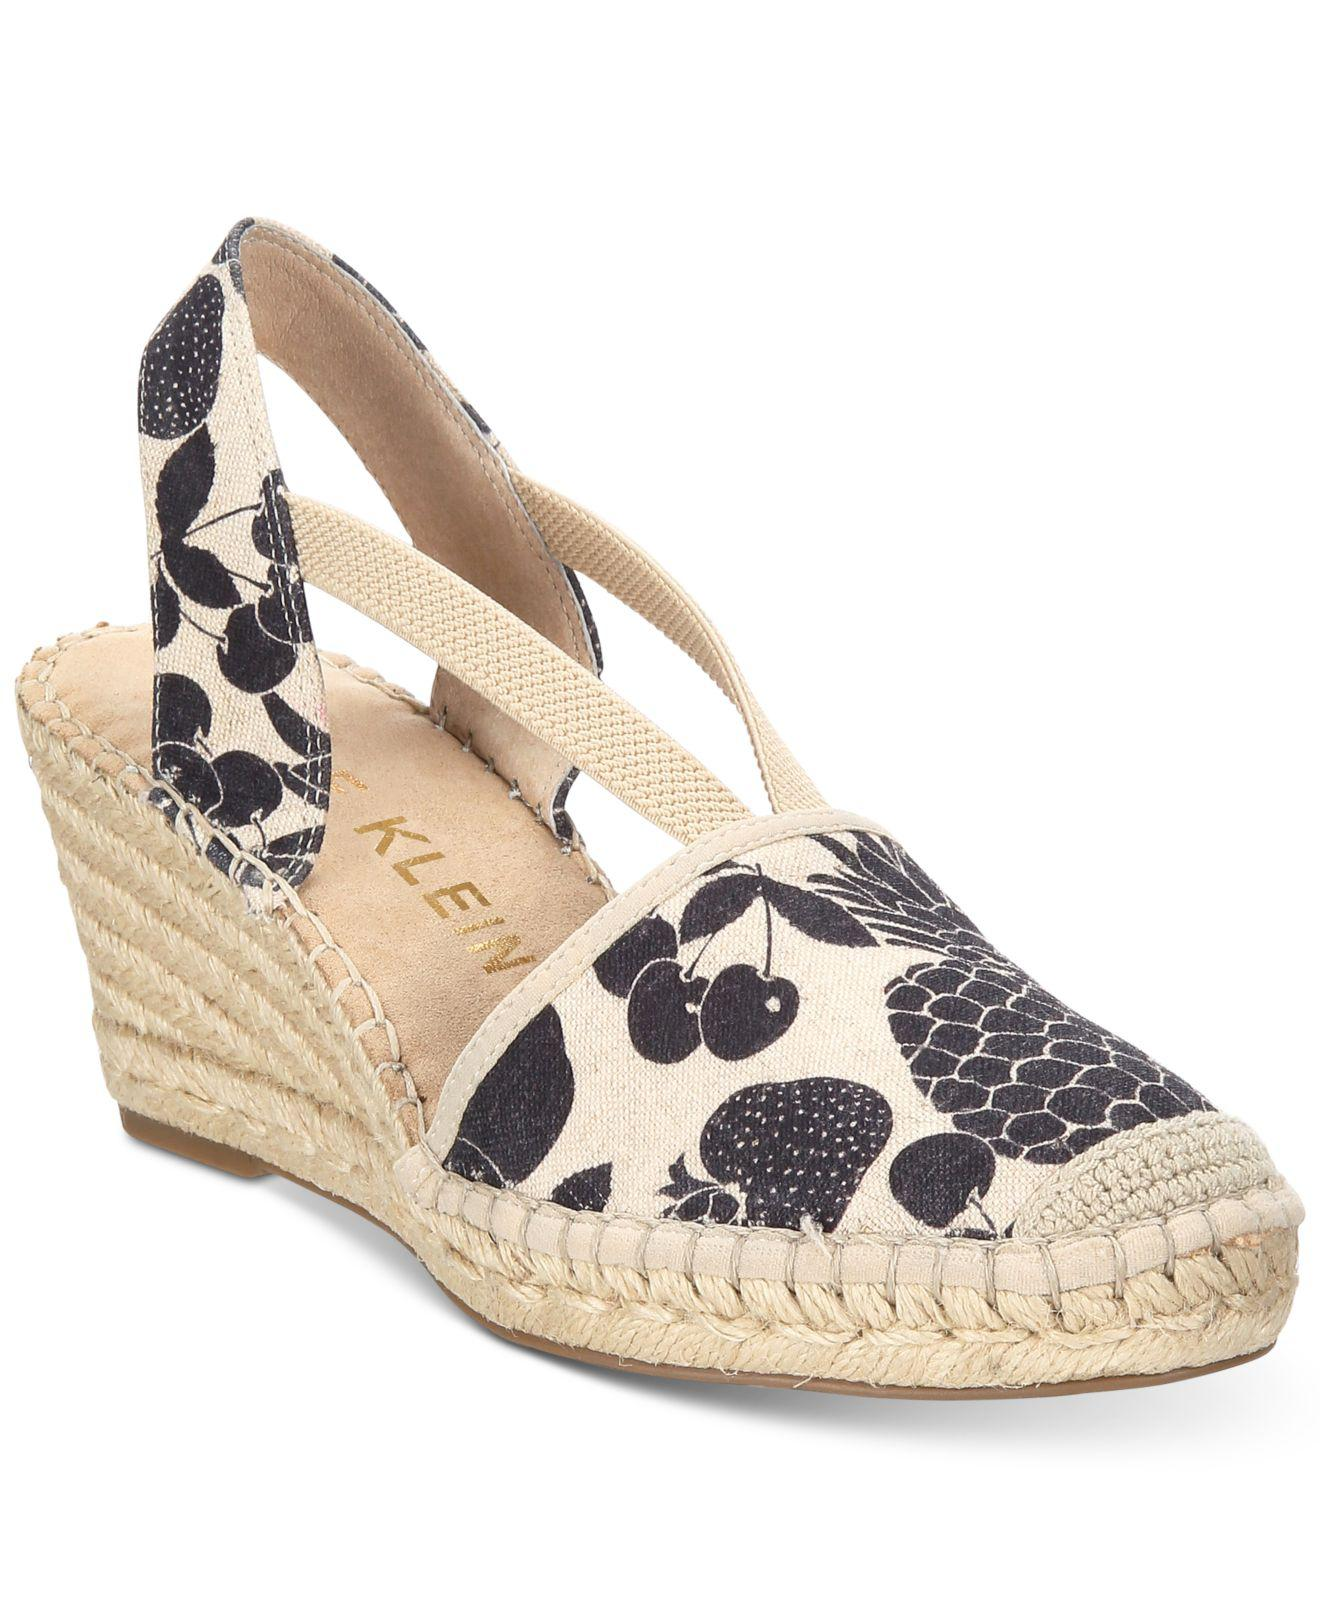 4053378a3cb0 Lyst - Anne Klein Abbey Espadrille Platform Wedge Sandals